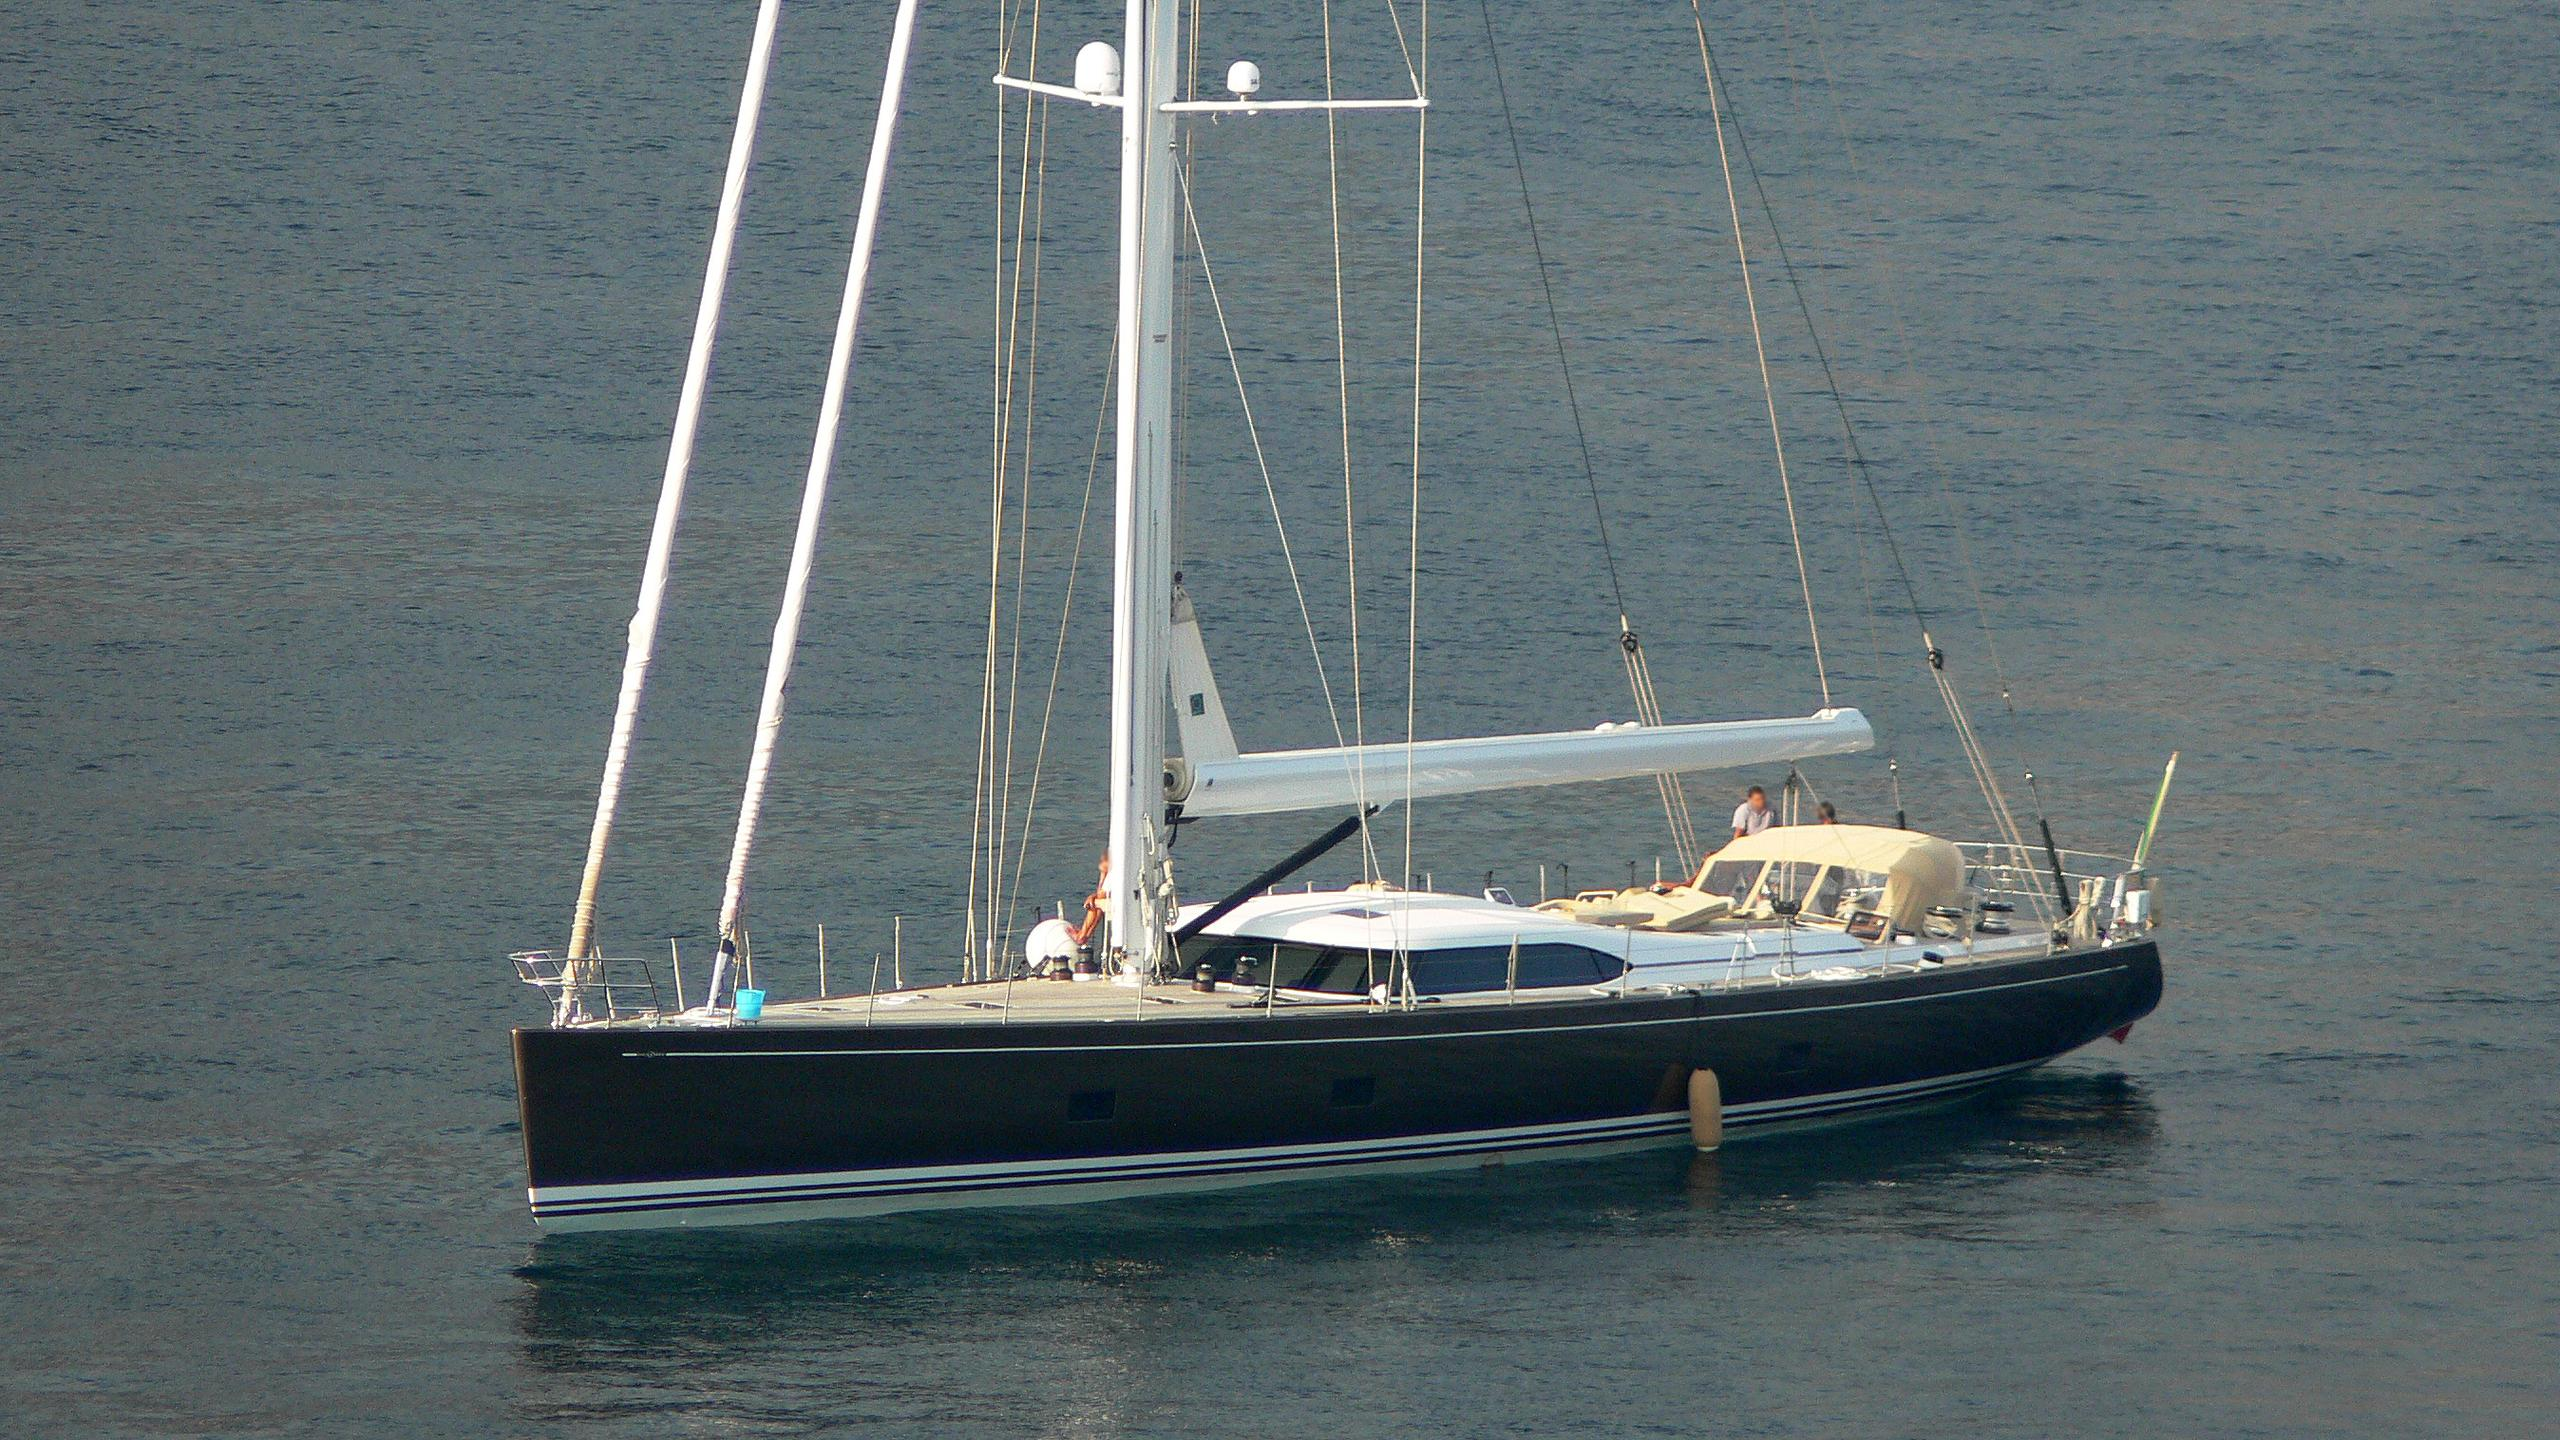 far-and-wide-sailing-yacht-southern-wind-2007-30m-half-profile